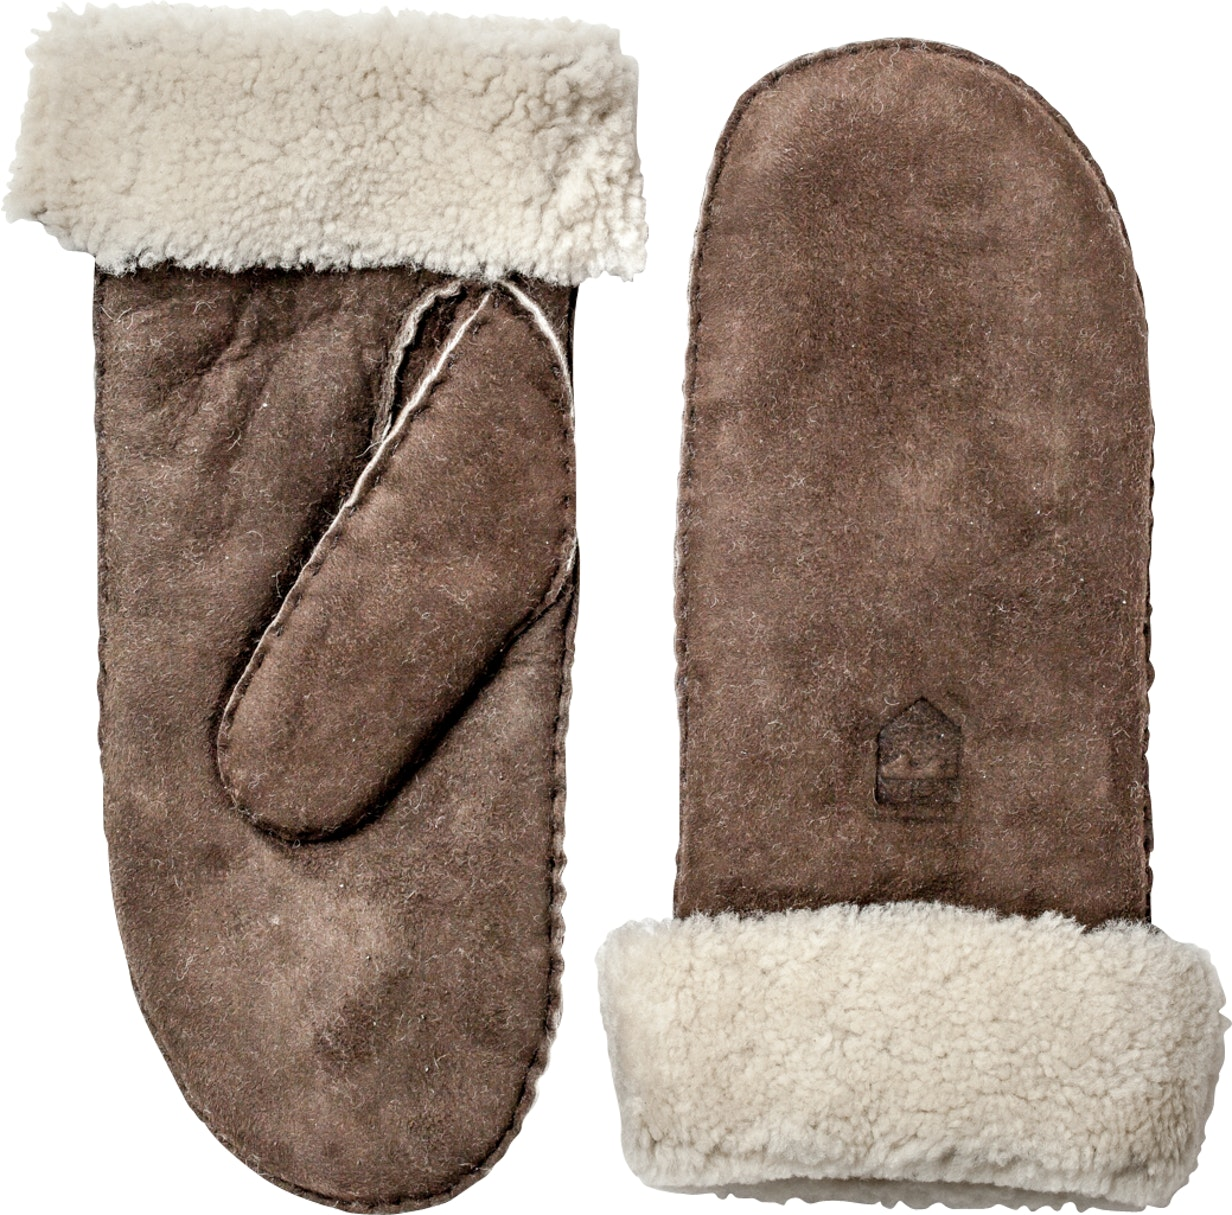 Product image for 18501 Sheepskin Mitt